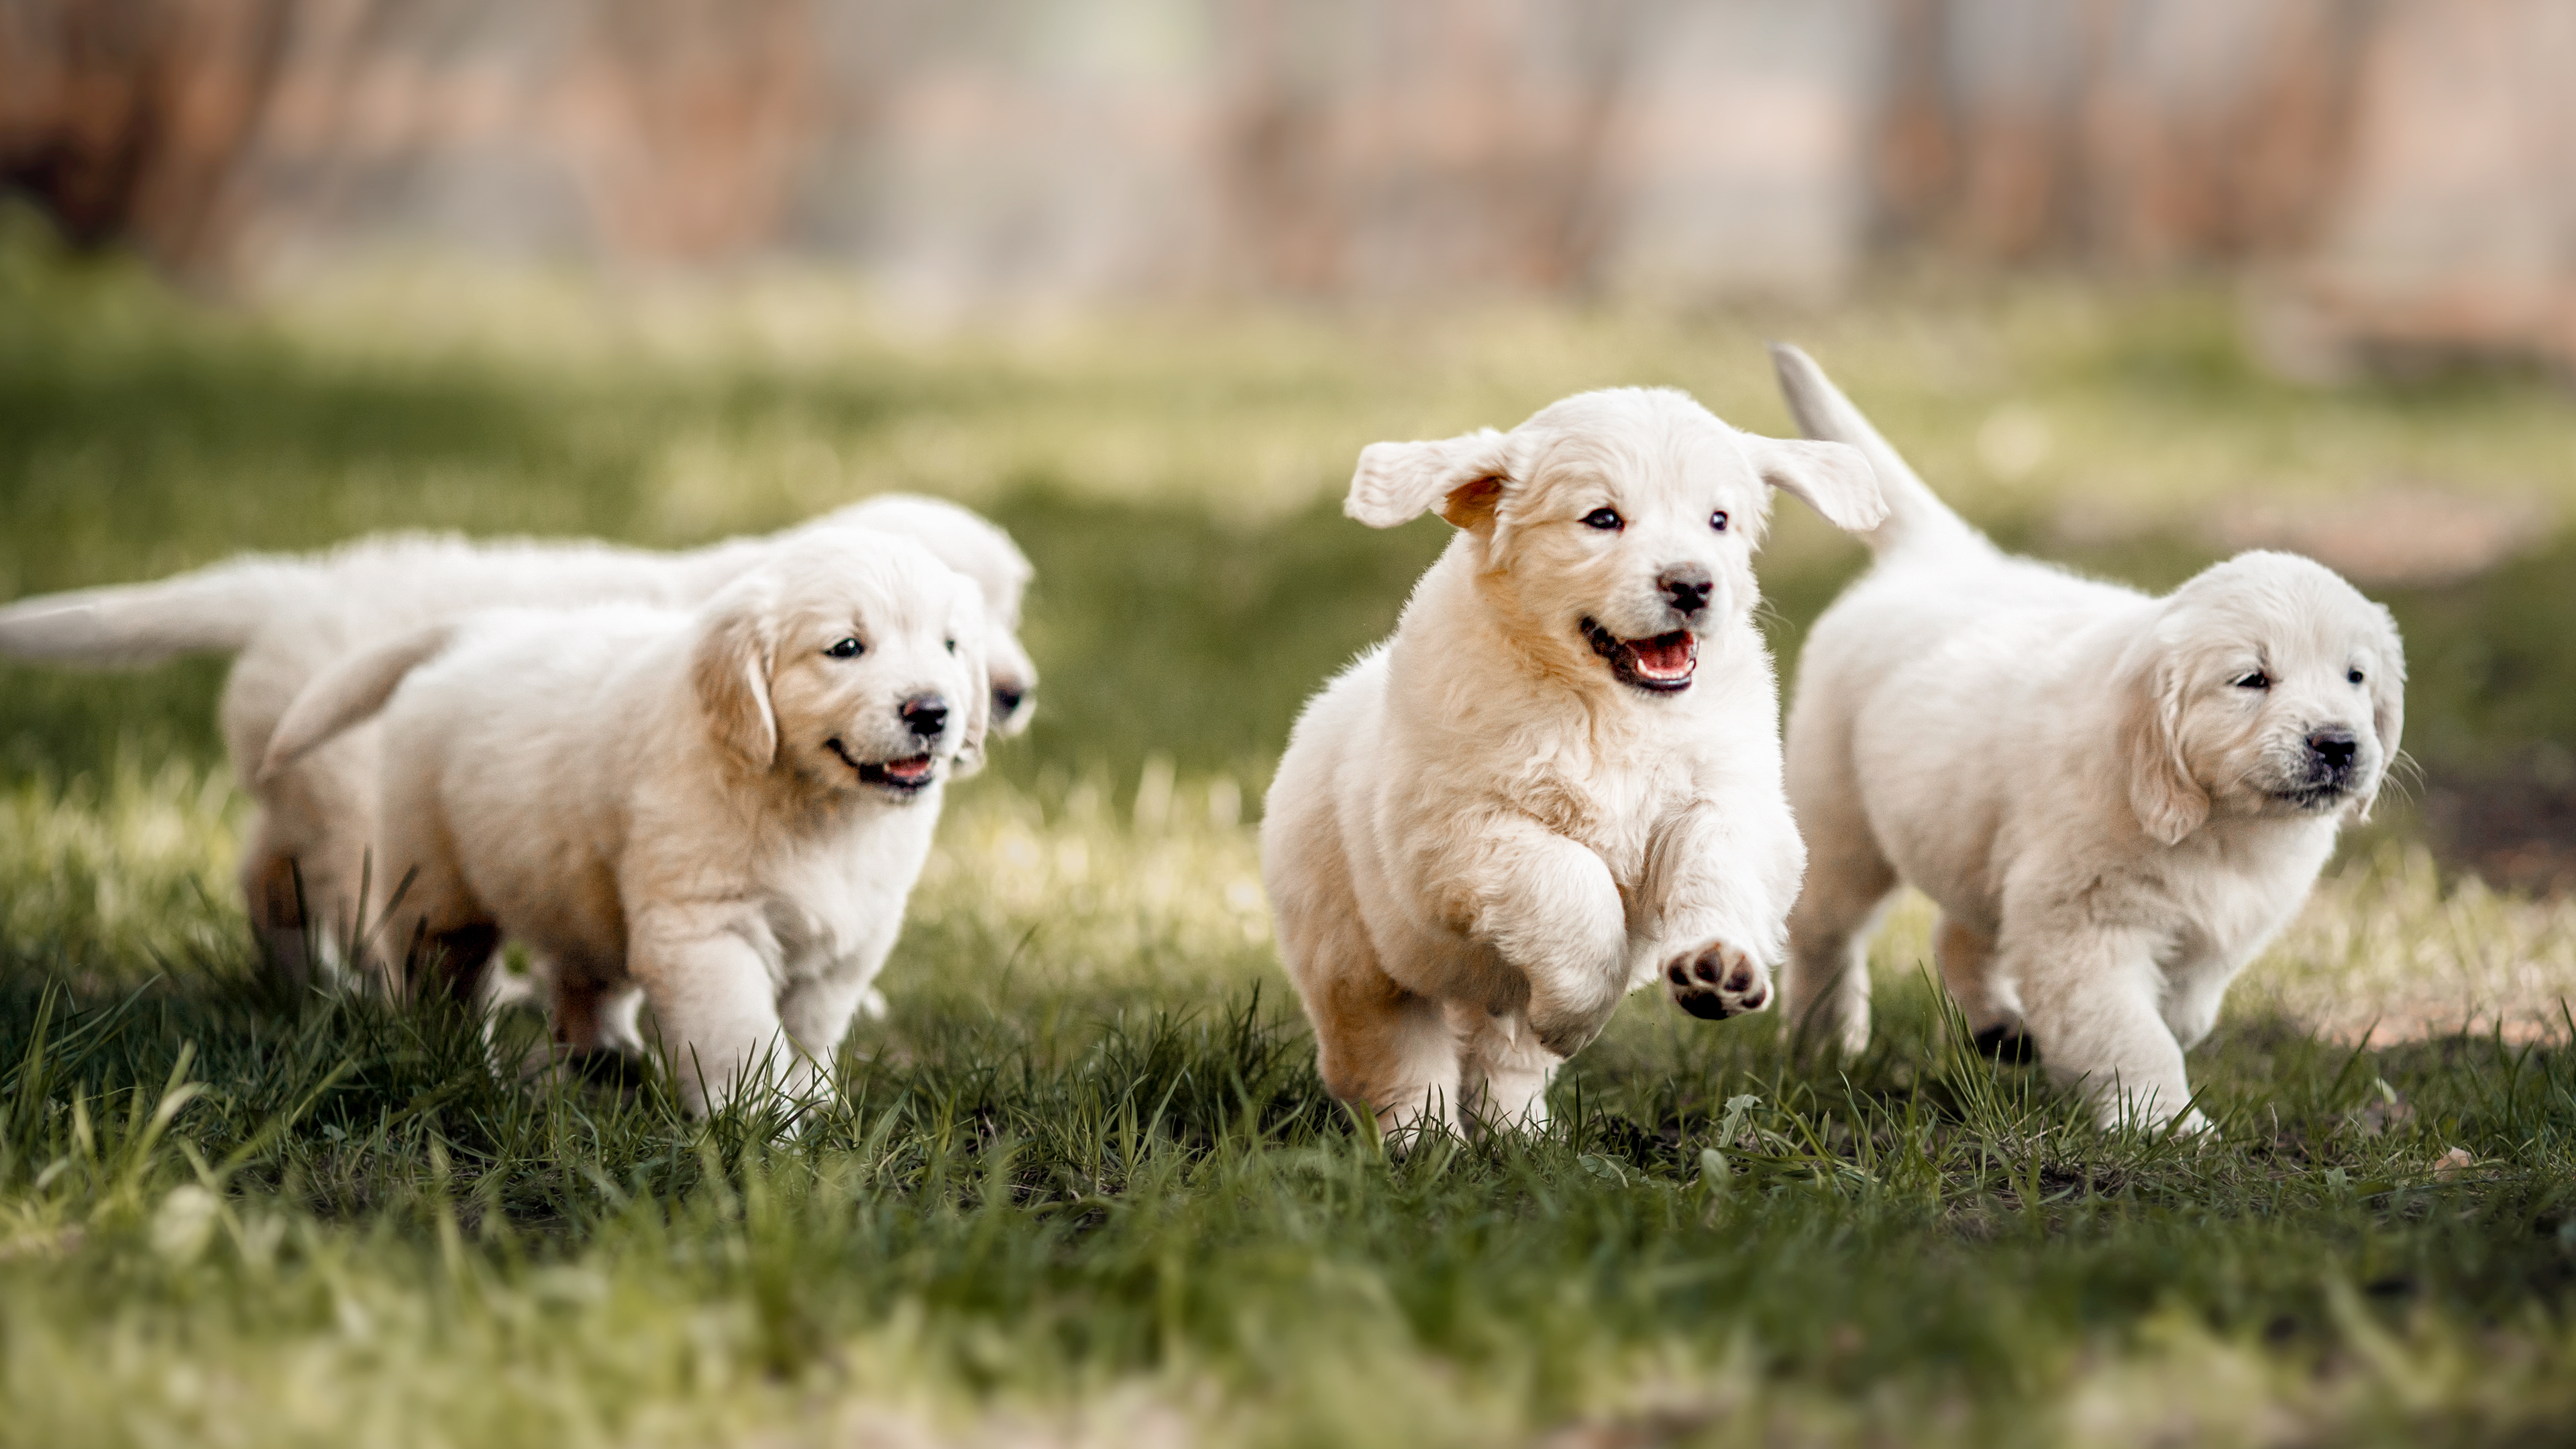 Golden Retriever puppies running outdoors in a garden